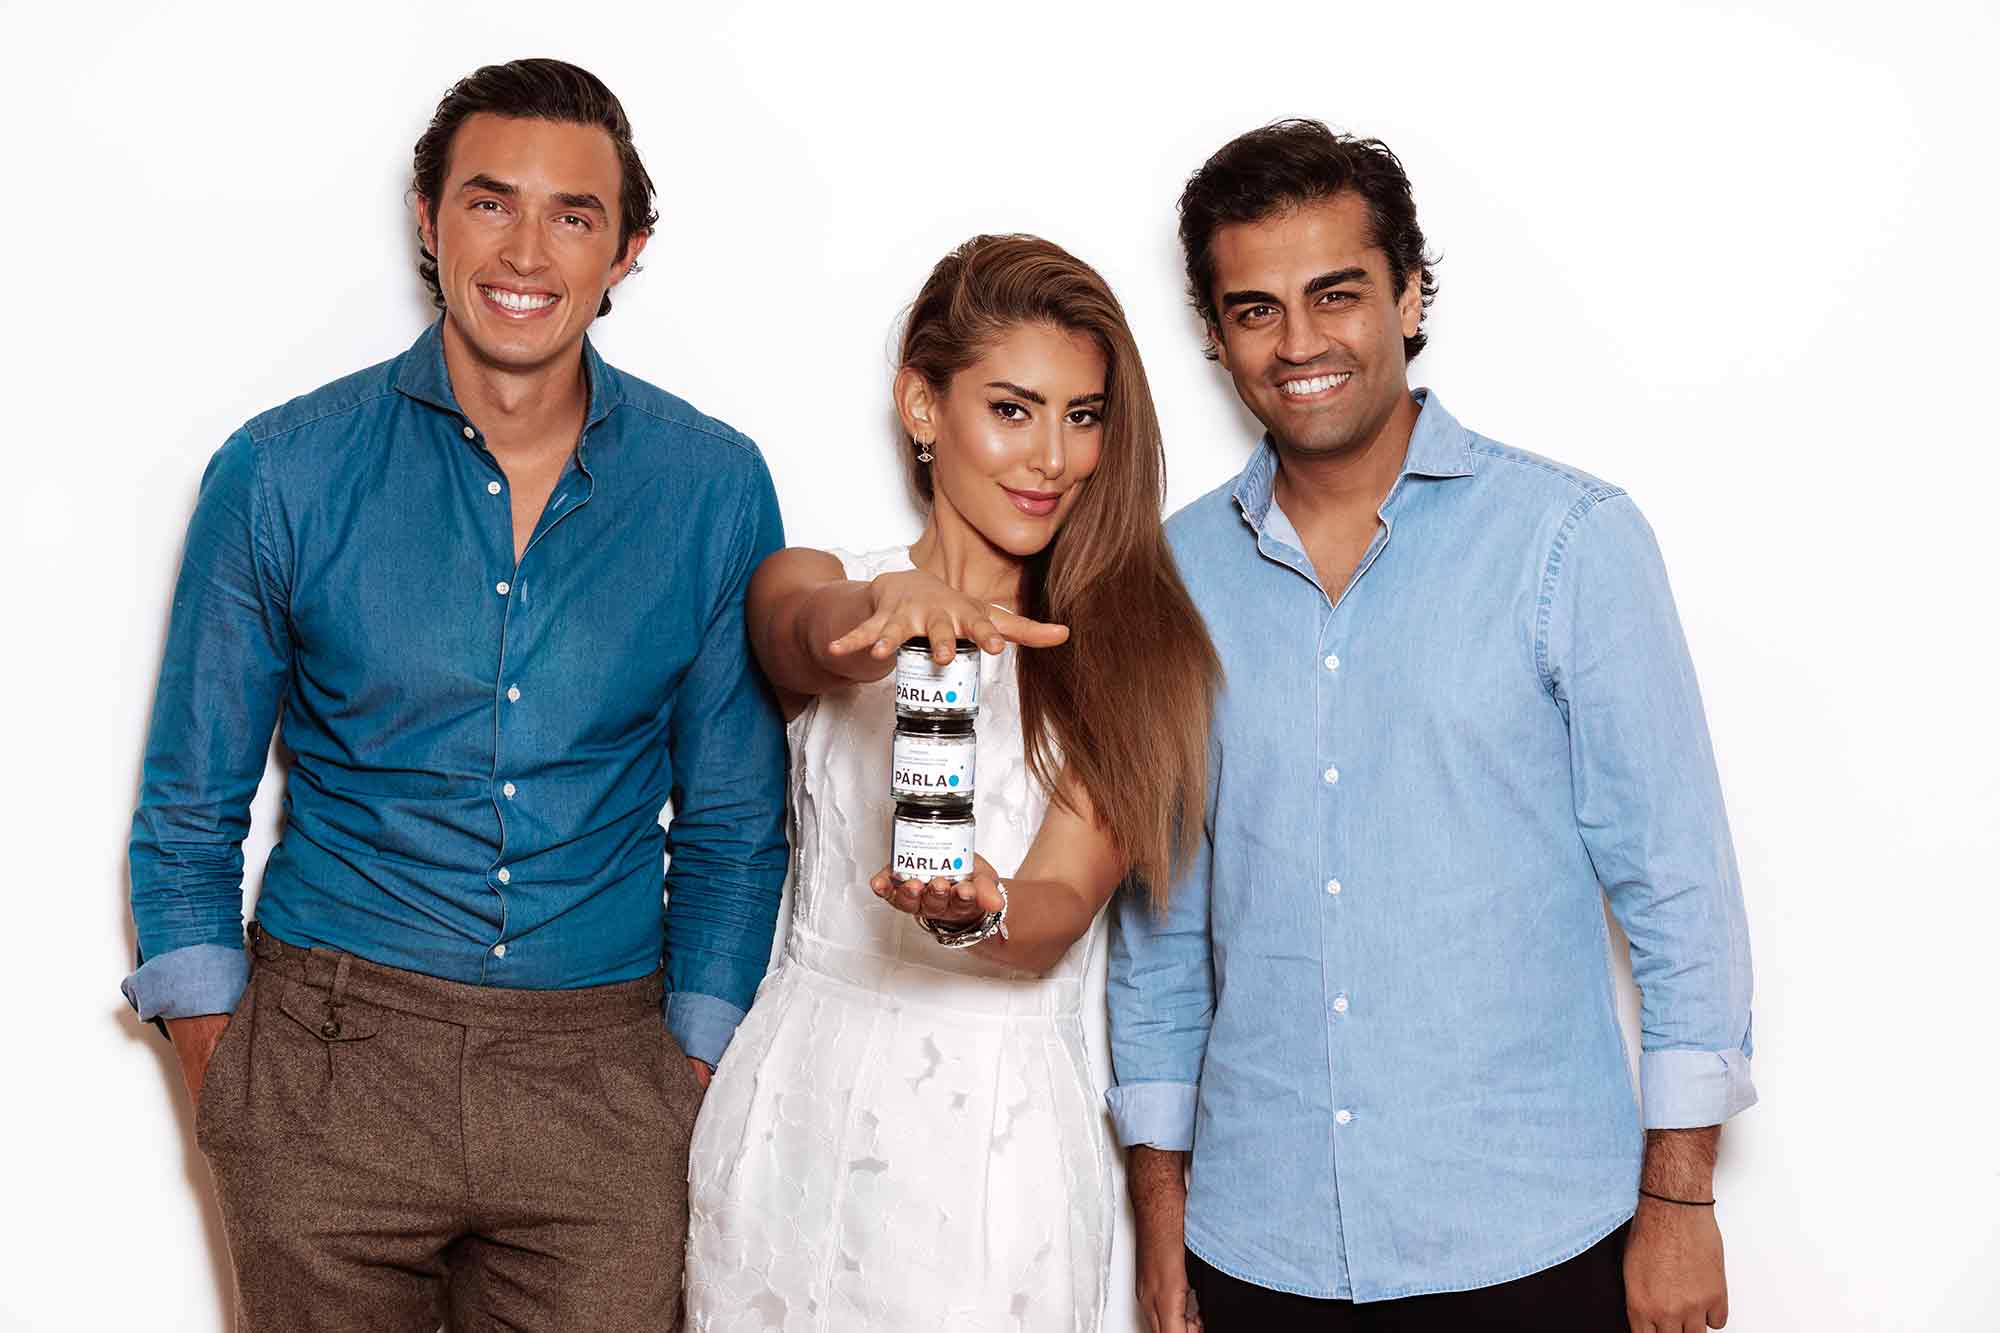 Dr Simon Chard, Dr Rhona Eskander and Dr Adarsh Thanki have created an eco-friendly solution to the plastic crisis of toothpaste tubes – Pärla